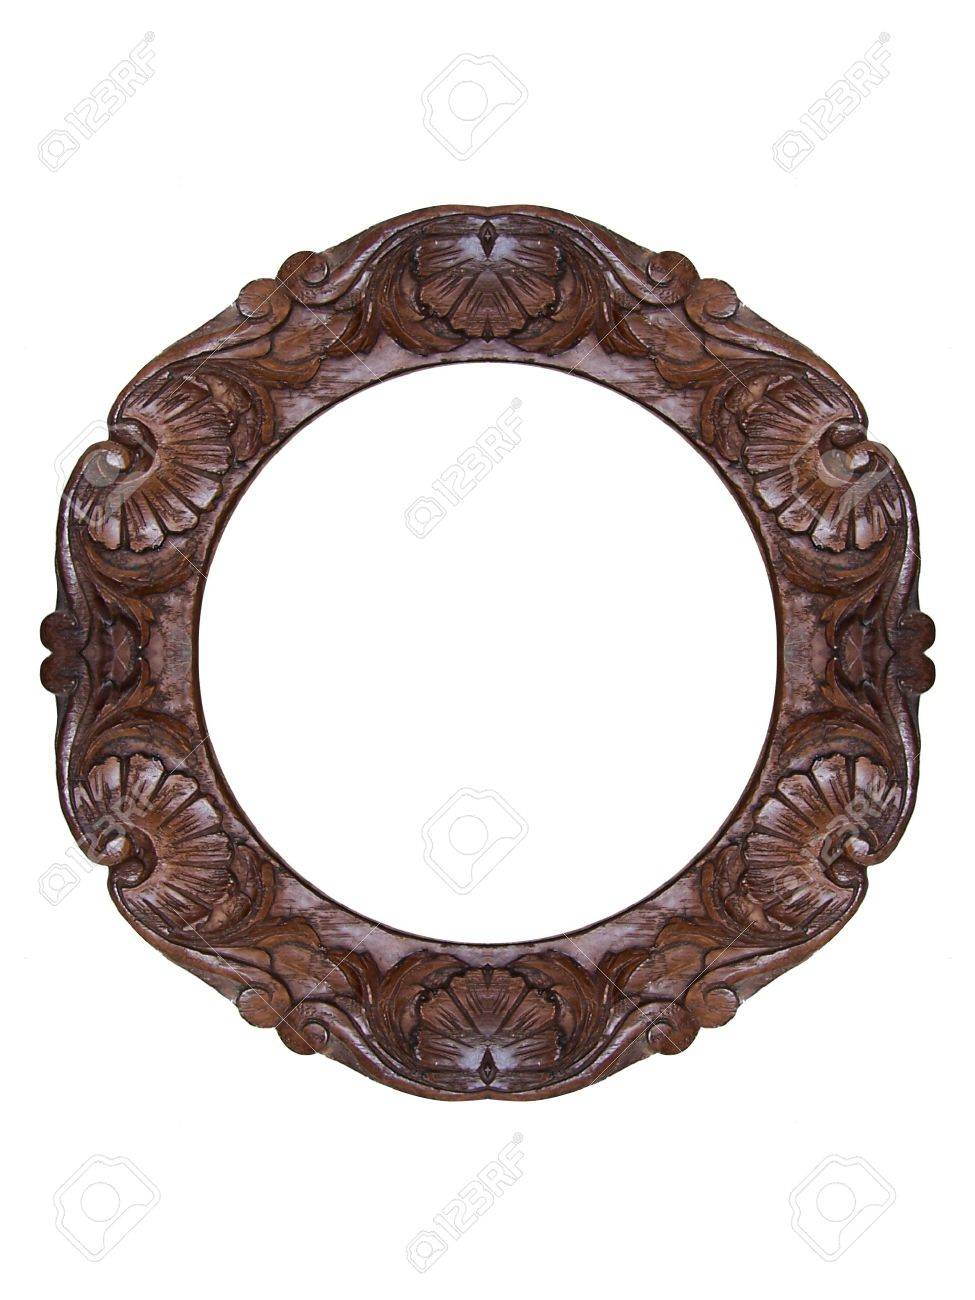 round wooden carved frame stock photo picture and royalty free round wooden carved frame stock photo - Wooden Picture Frames